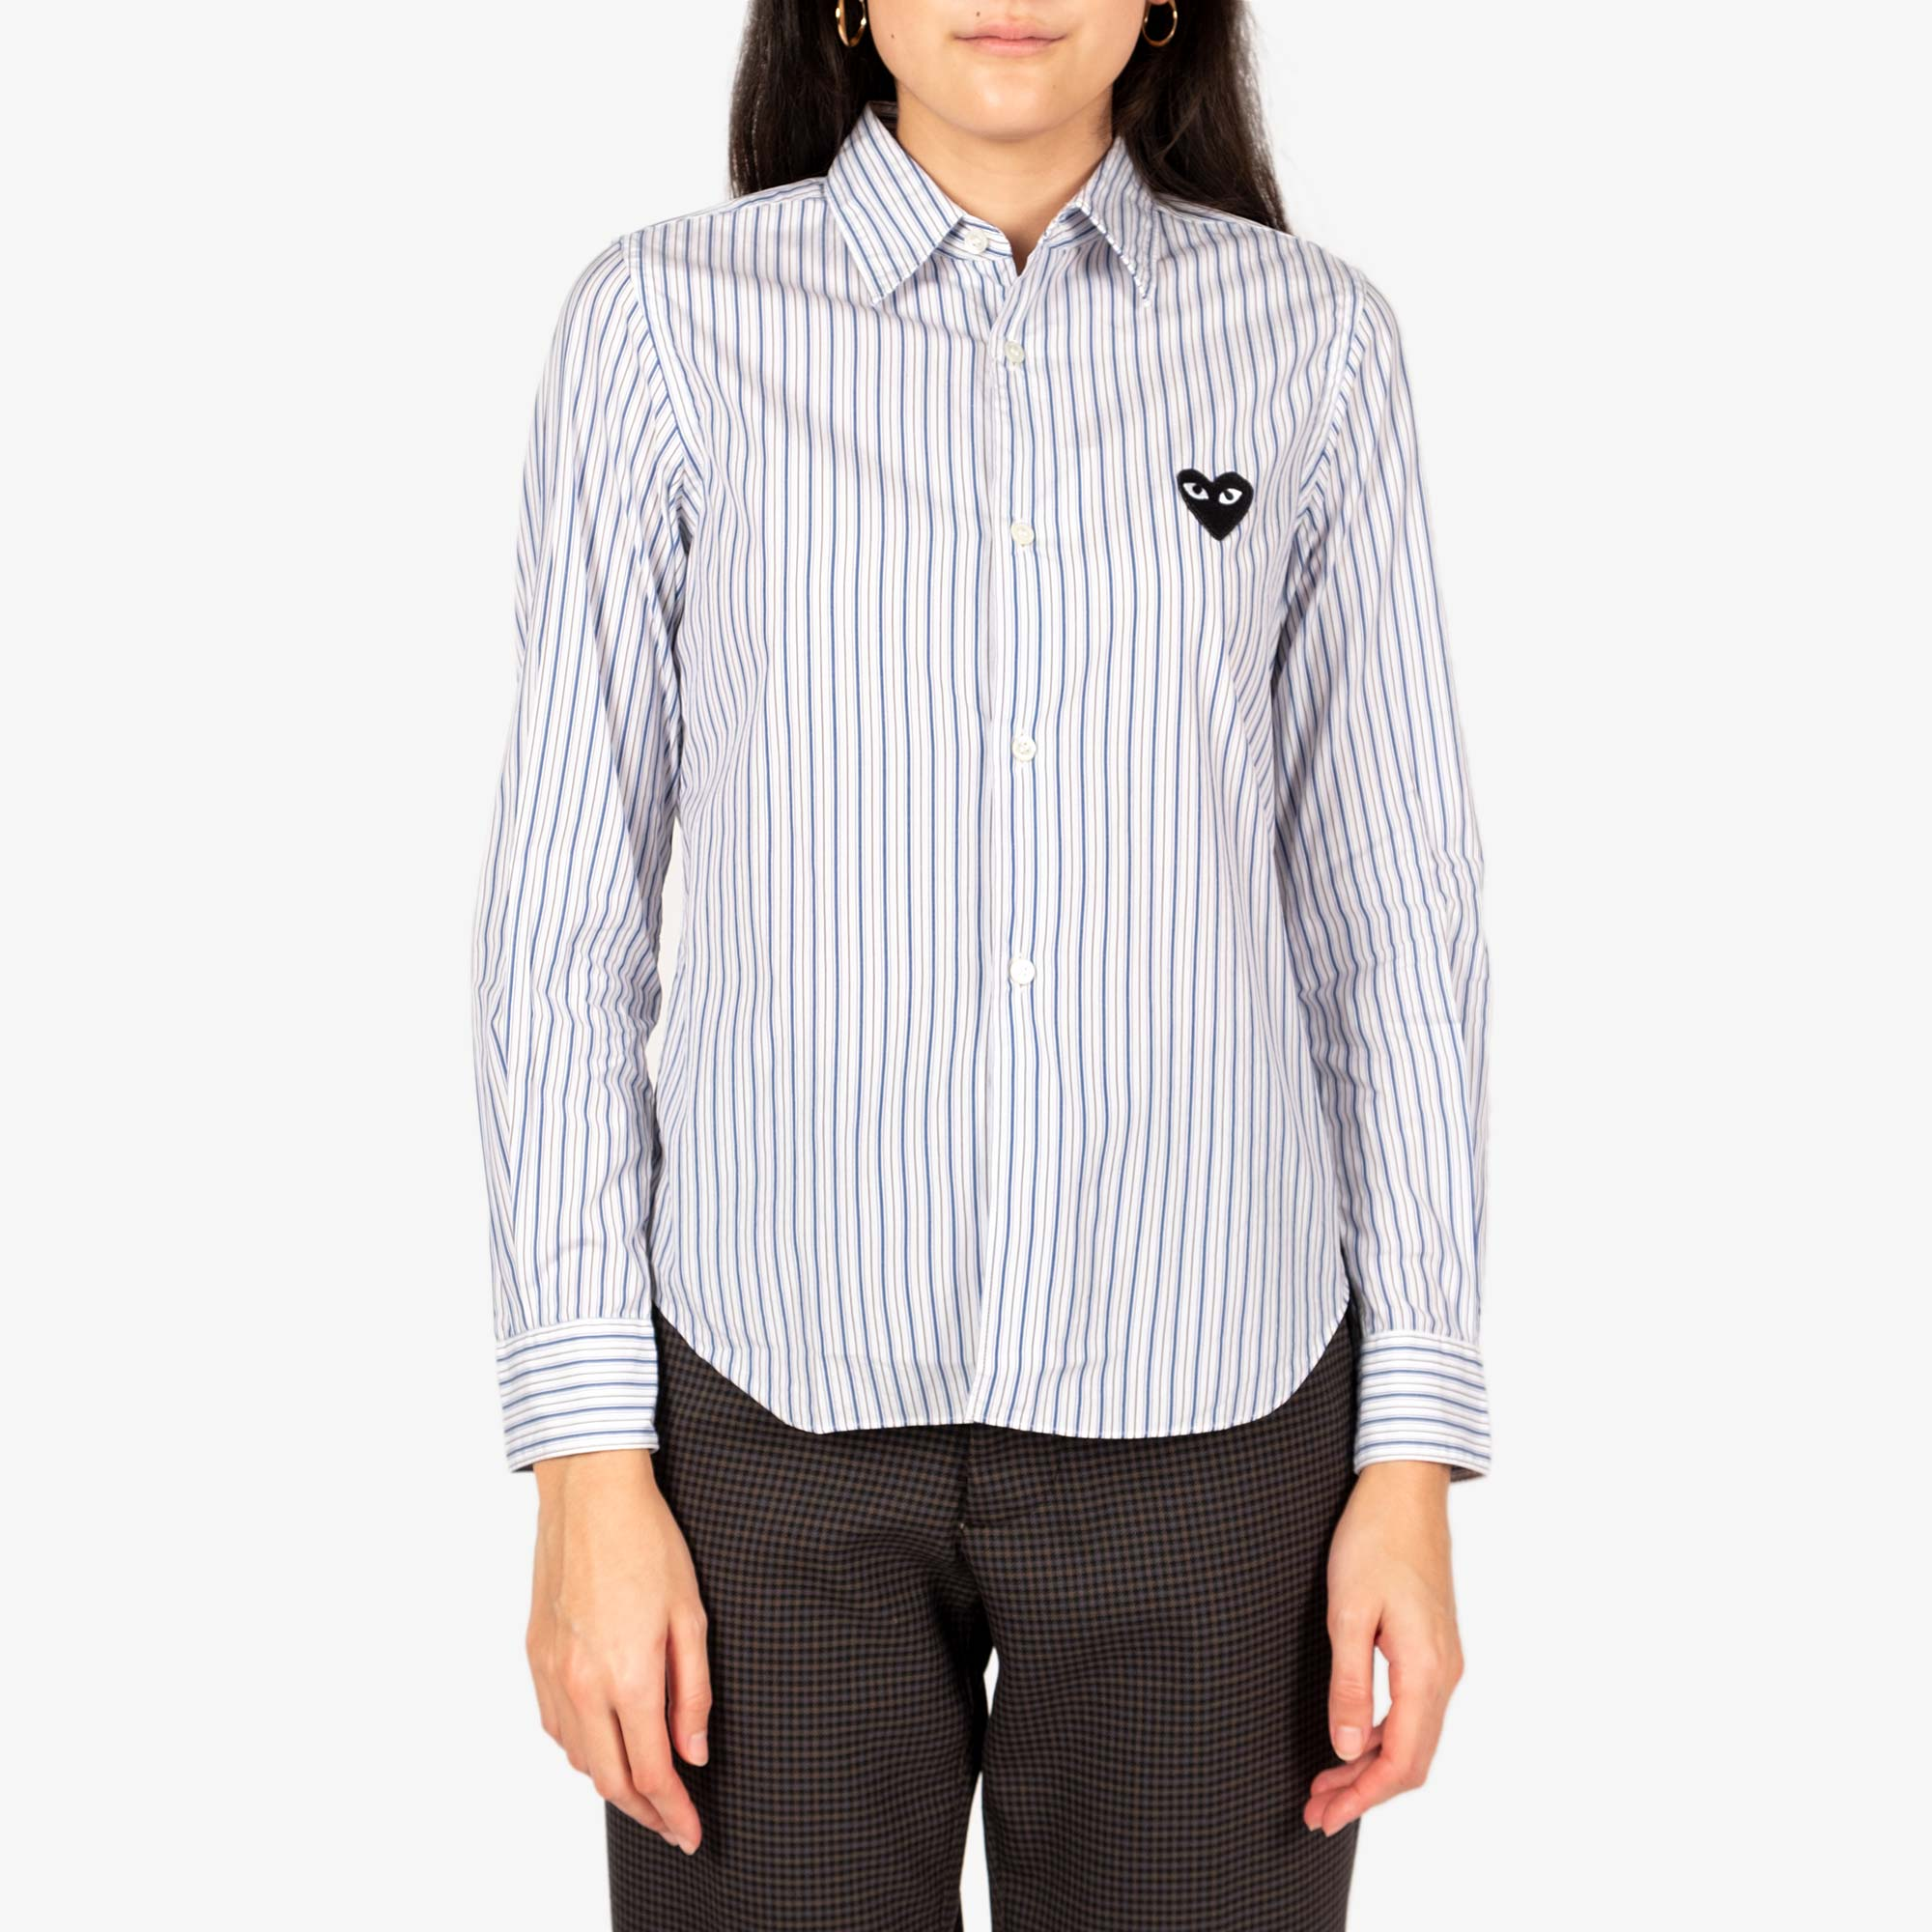 Comme des Garçons - PLAY Black Emblem Stripe Womens Shirt - White / Navy 3